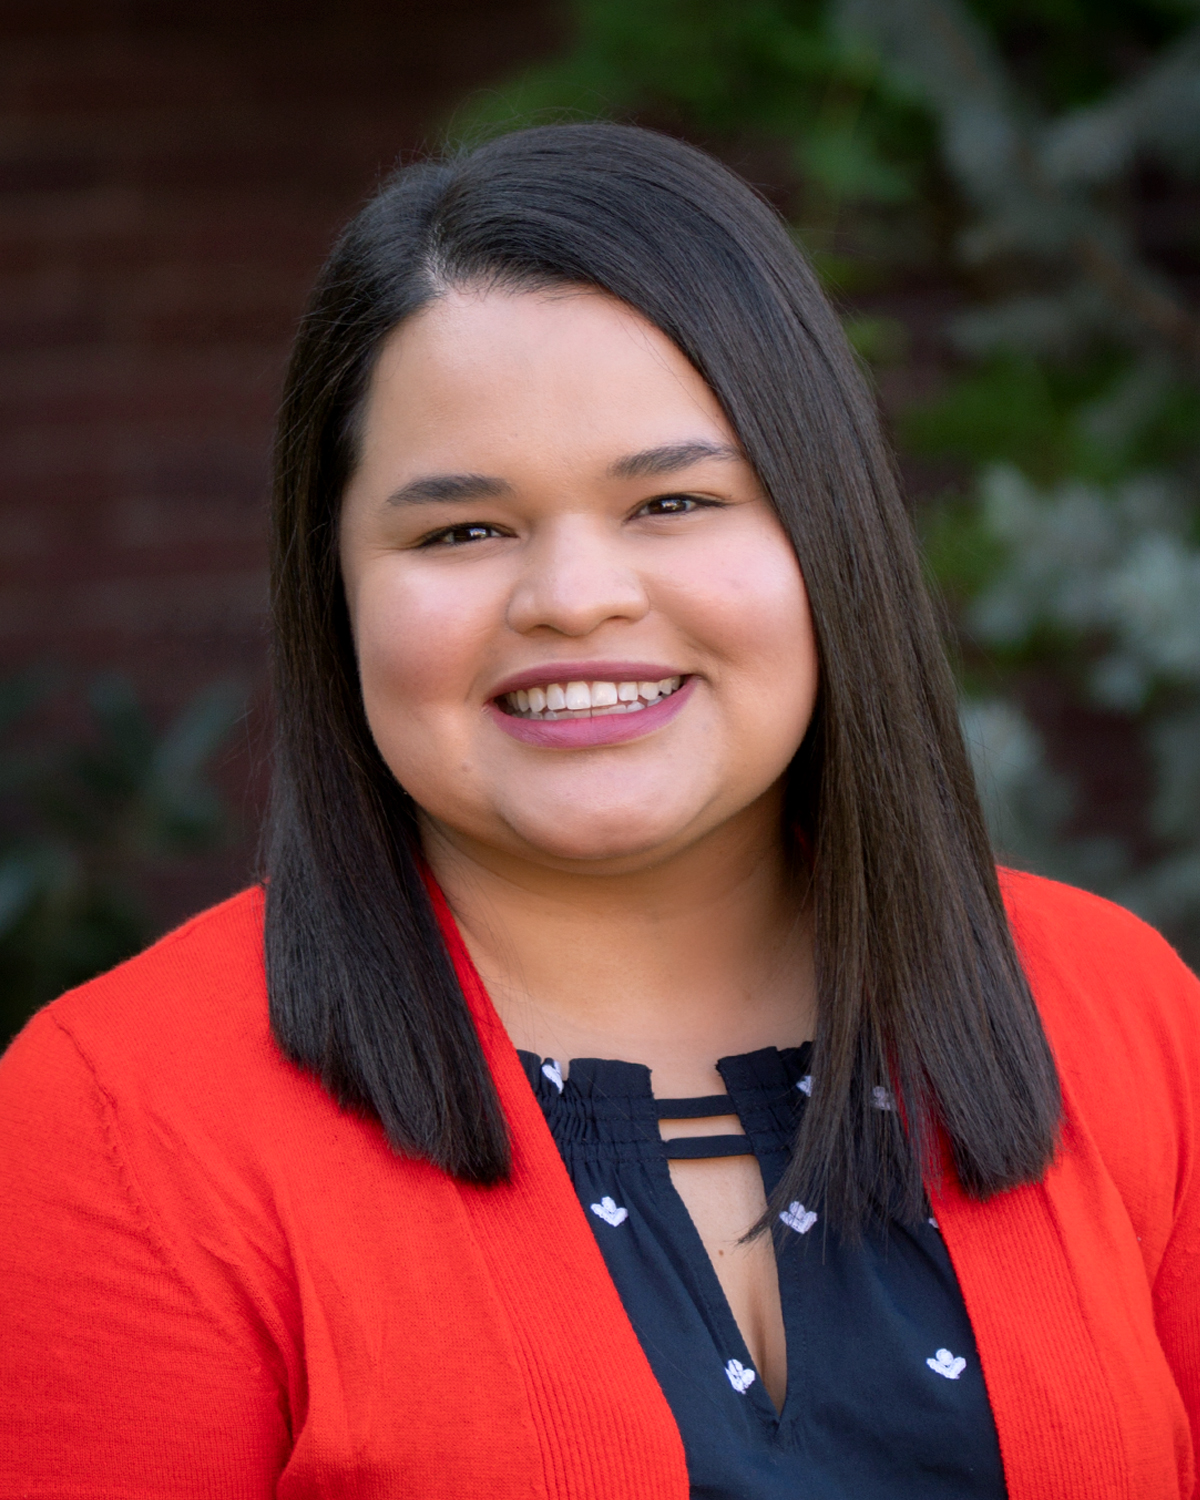 Andrea Orozco, Admissions Counselor at Boise State